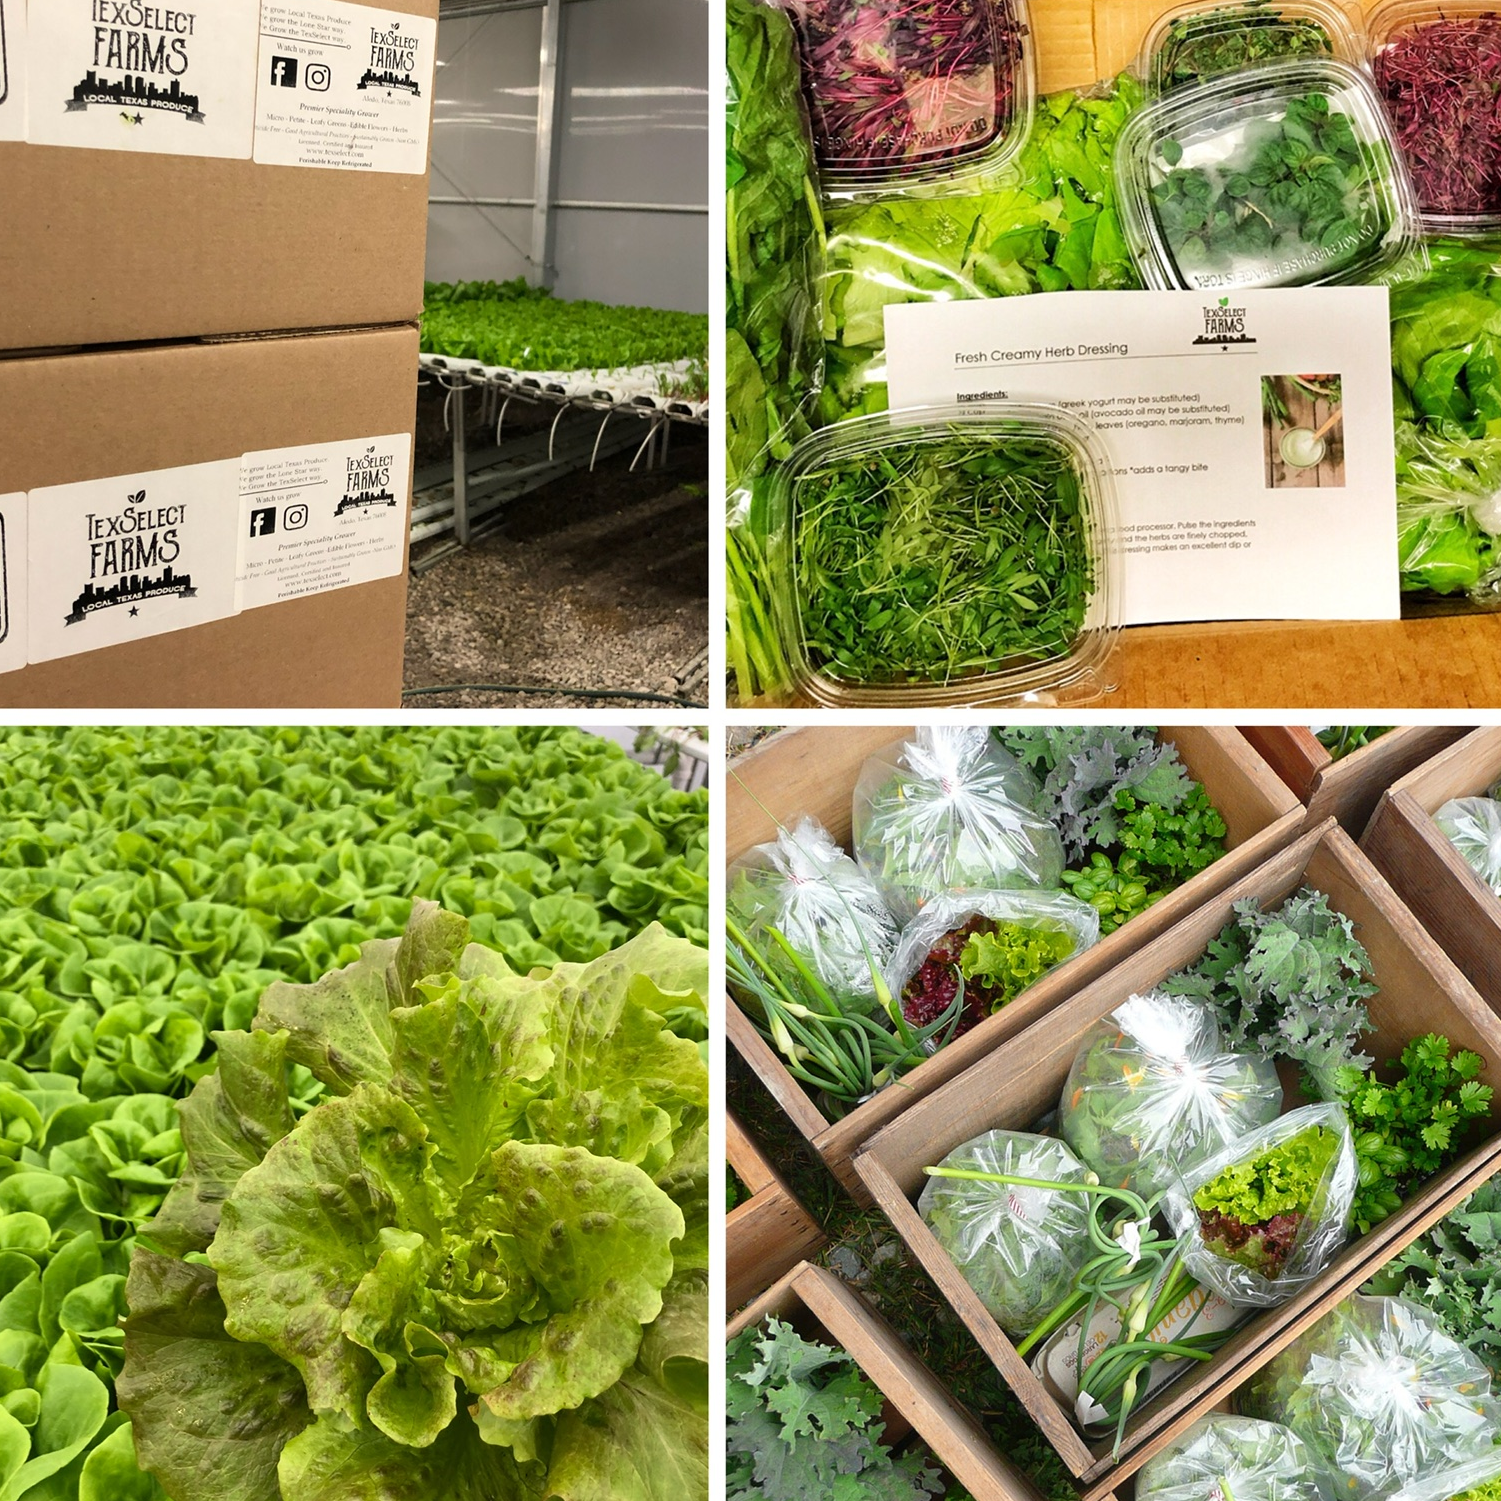 Our weekly harvest box offers fresh and bountiful variety of fresh local produce